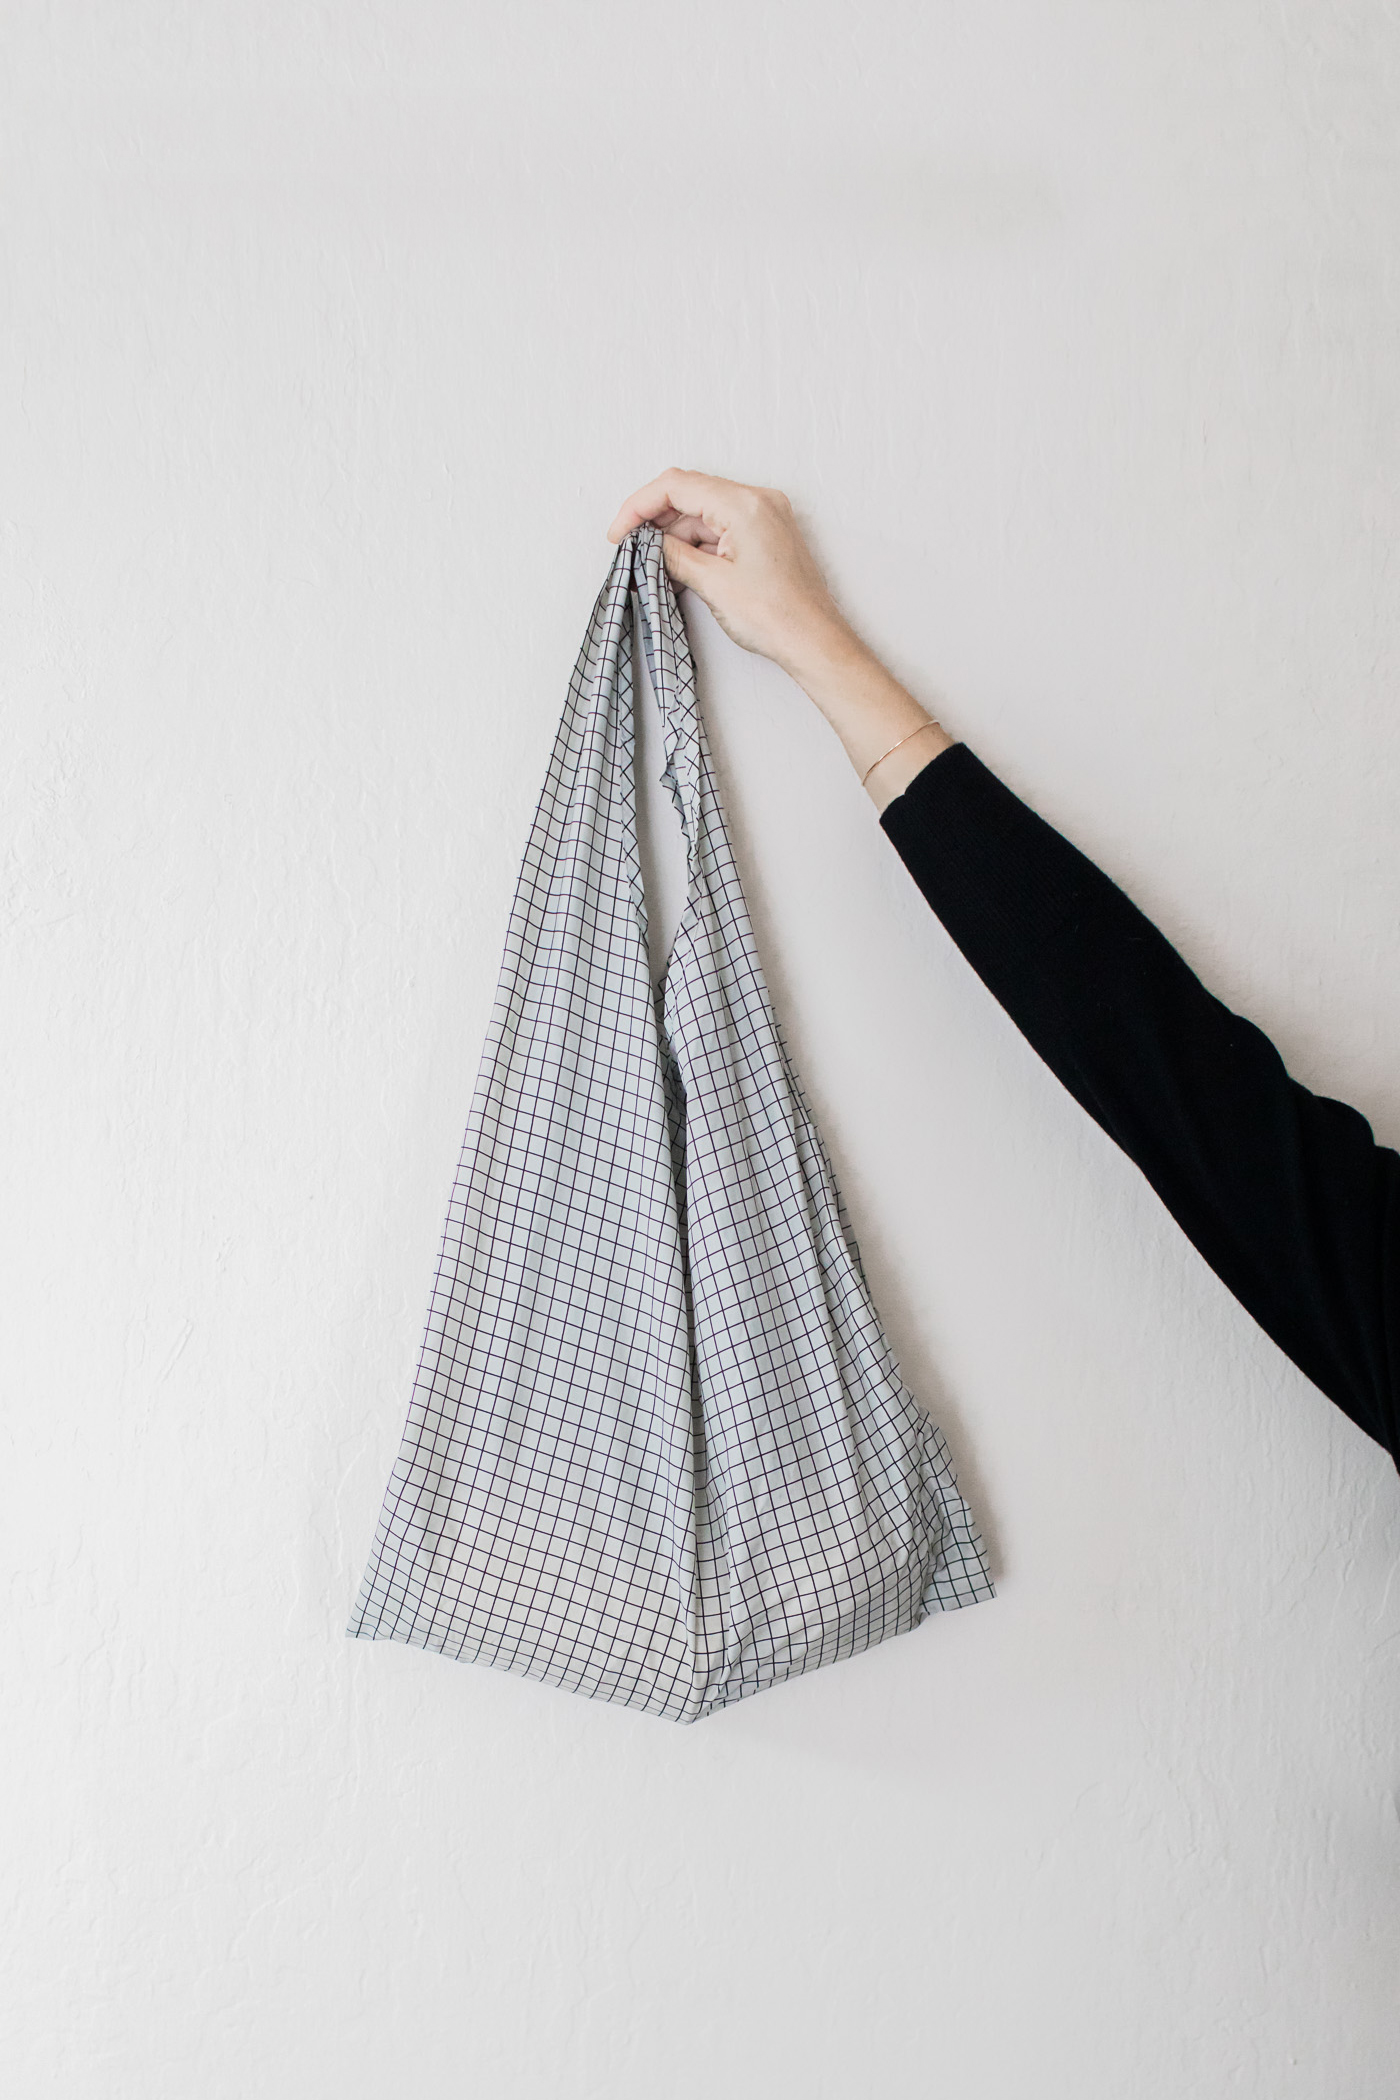 Zero Waste Reusable Bag Favorites